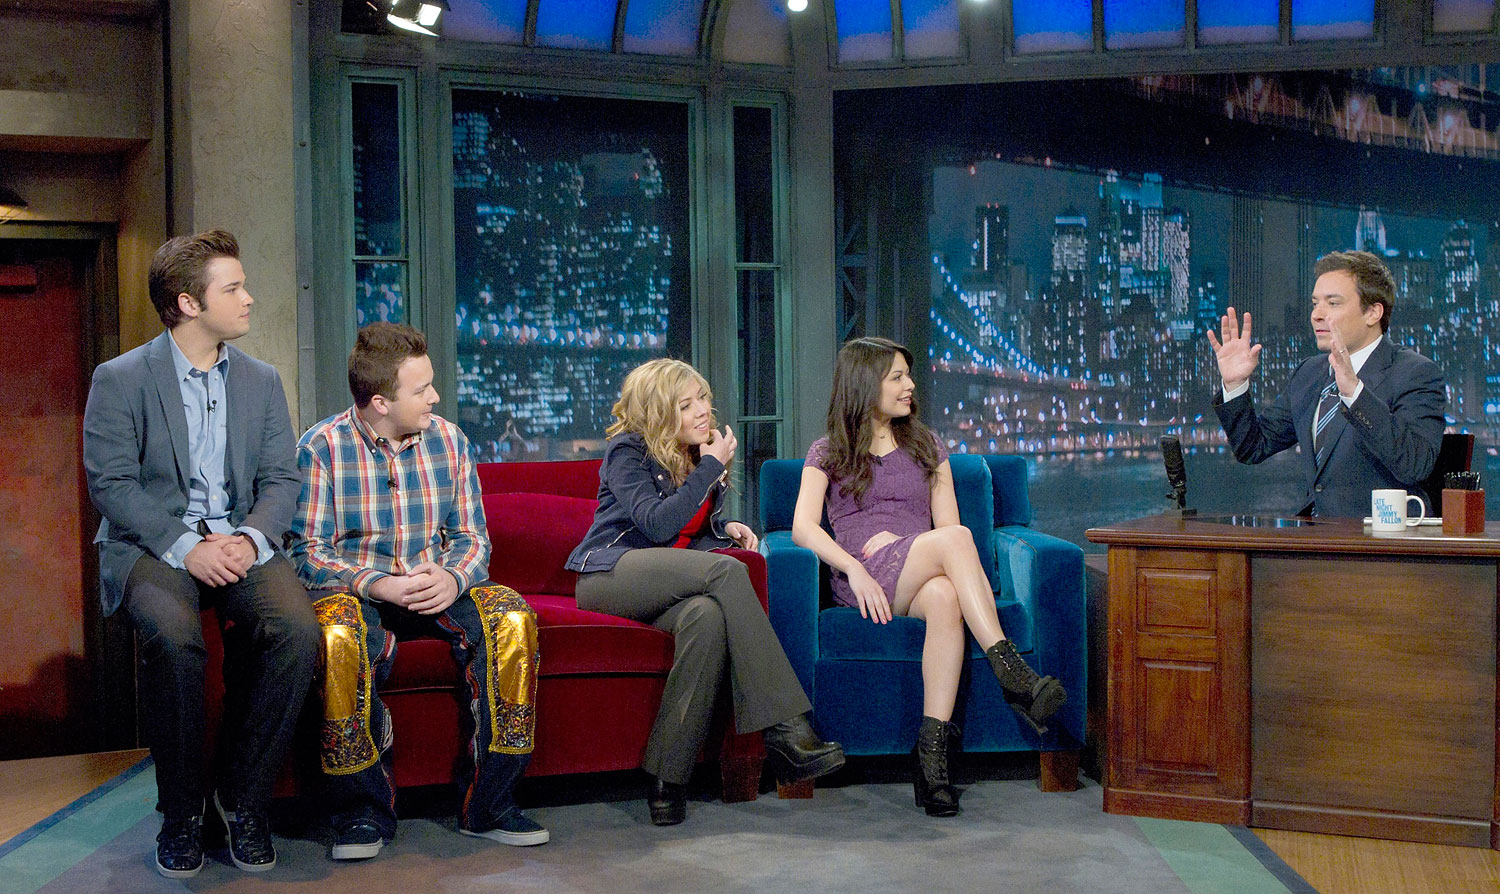 The cast of iCarly and Jimmy Fallon in a cross over episode of iCarly.